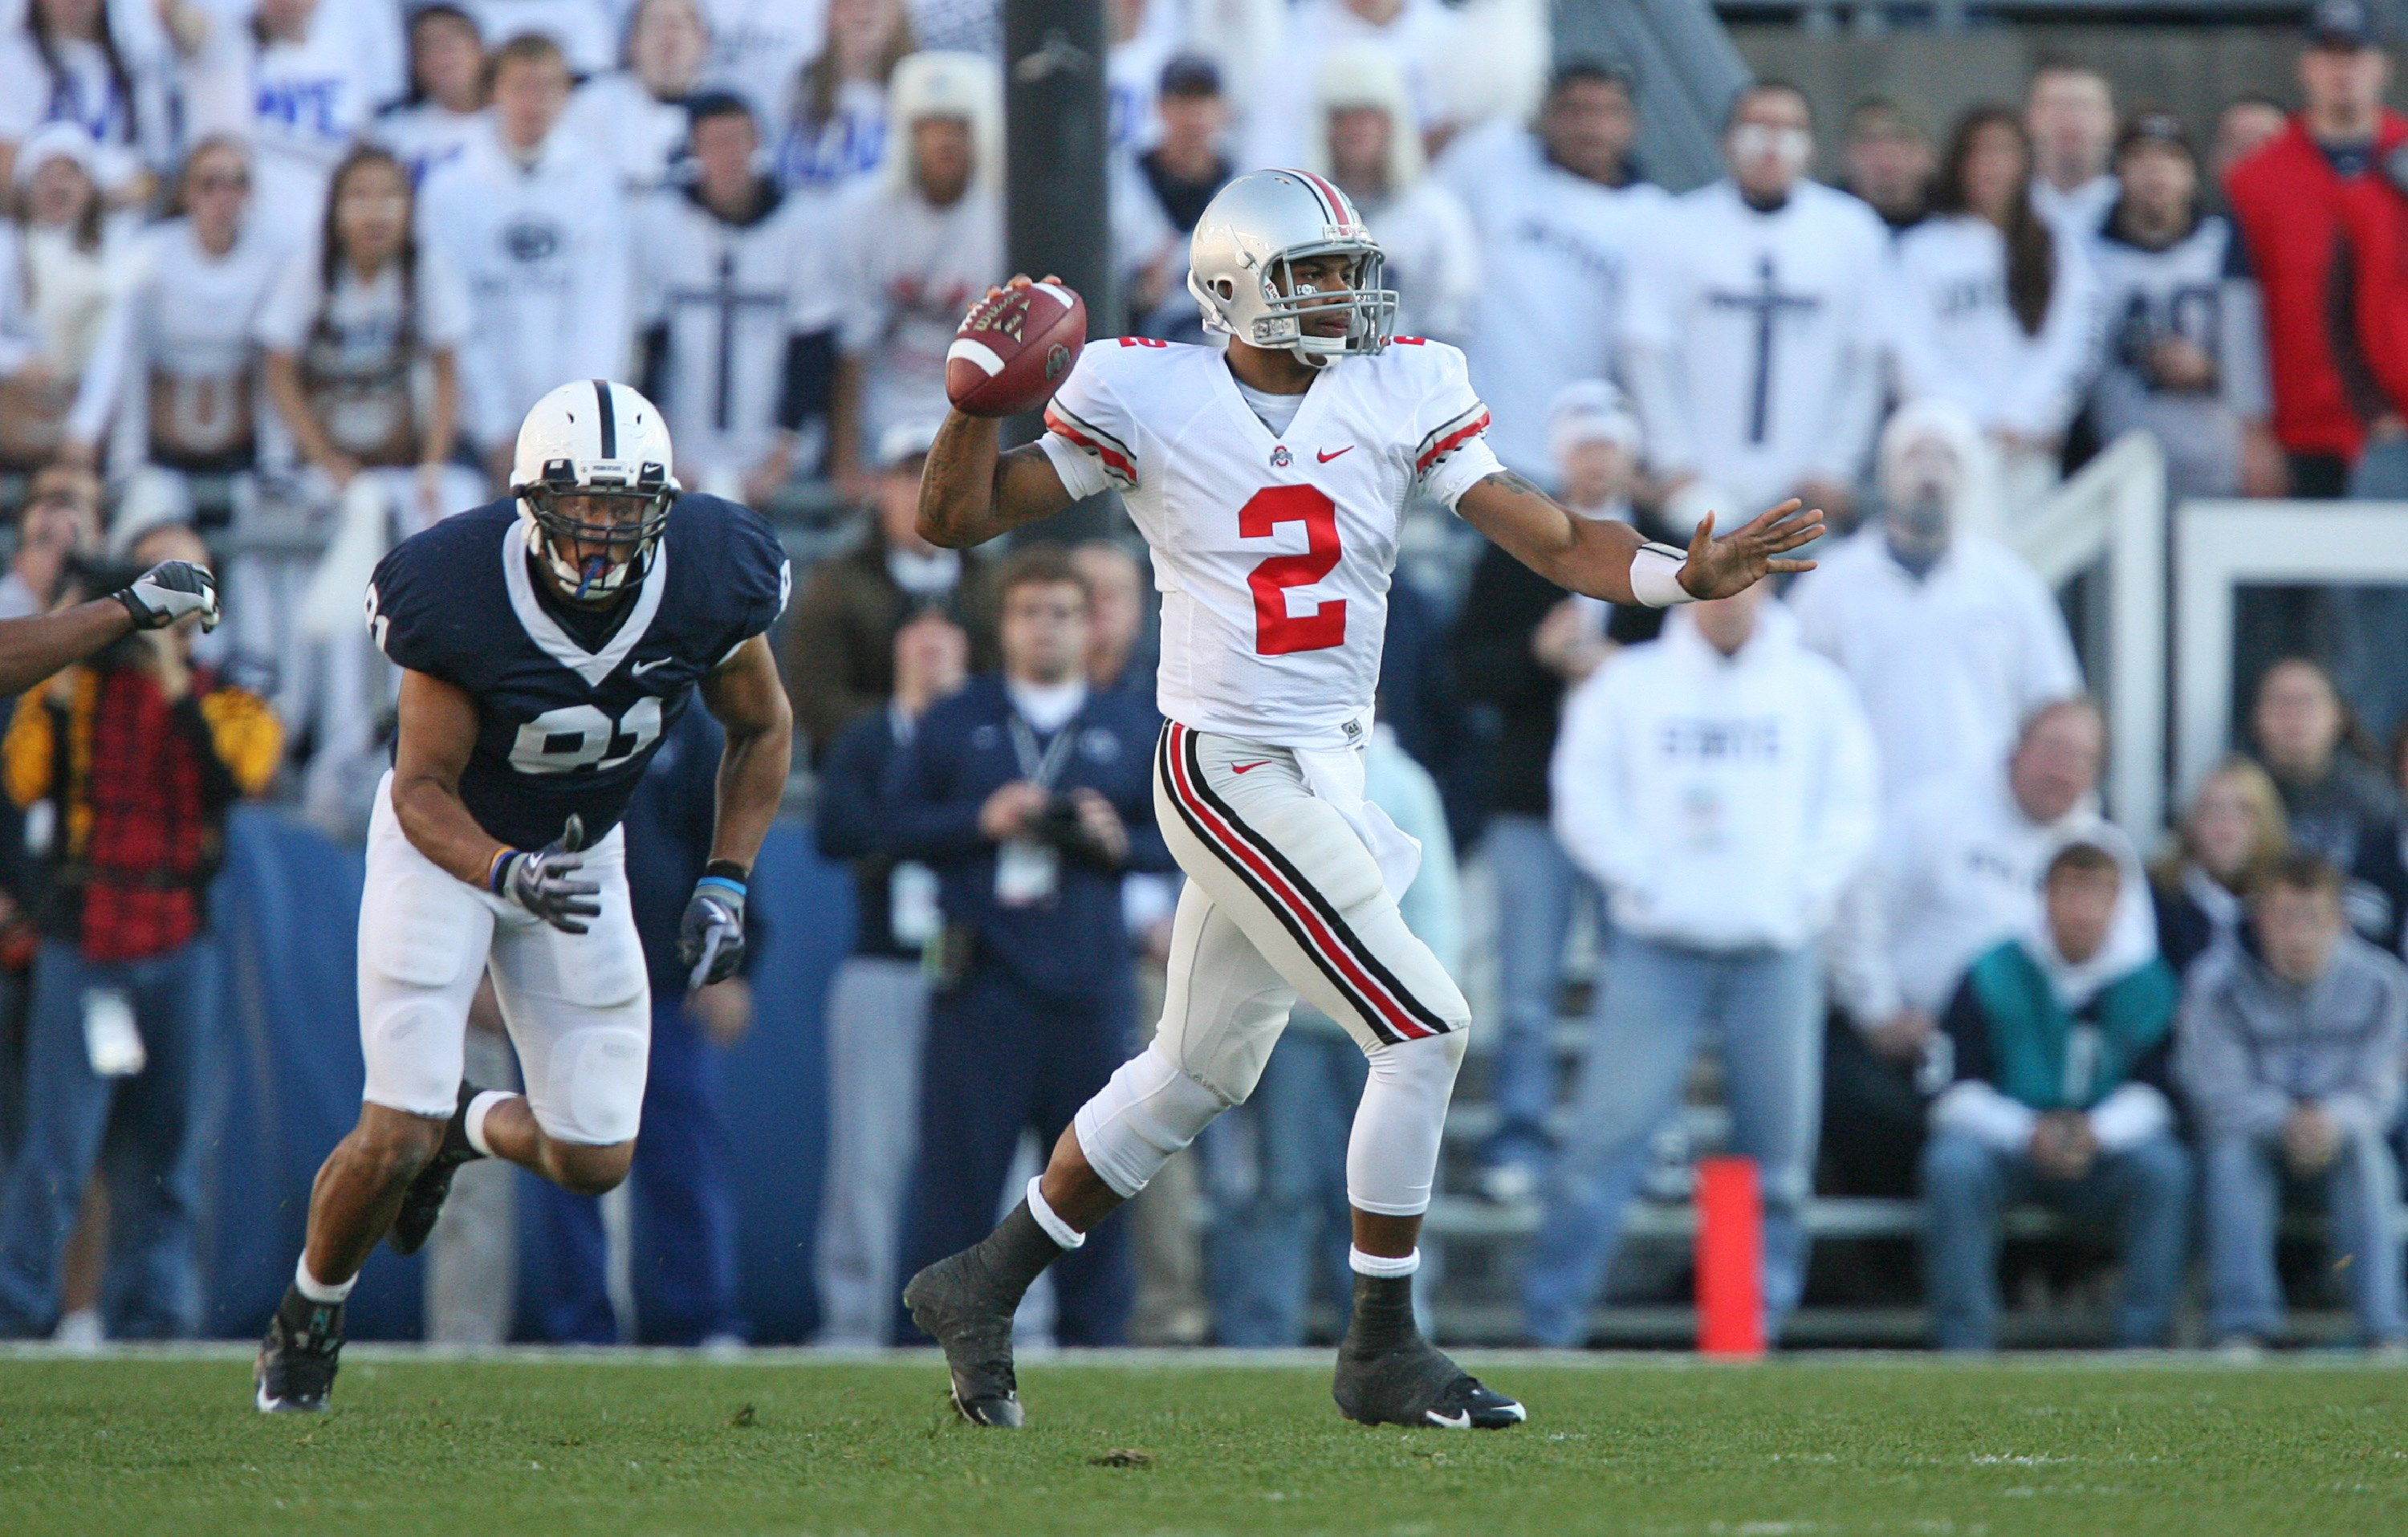 STATE COLLEGE, PA - NOVEMBER 7: Quarterback Terrelle Pryor #2 of the Ohio State Buckeyes throws a pass during a game against the Penn State Nittany Lions on November 7, 2009 at Beaver Stadium in State College, Pennsylvania. Ohio State won 24-7. (Photo by